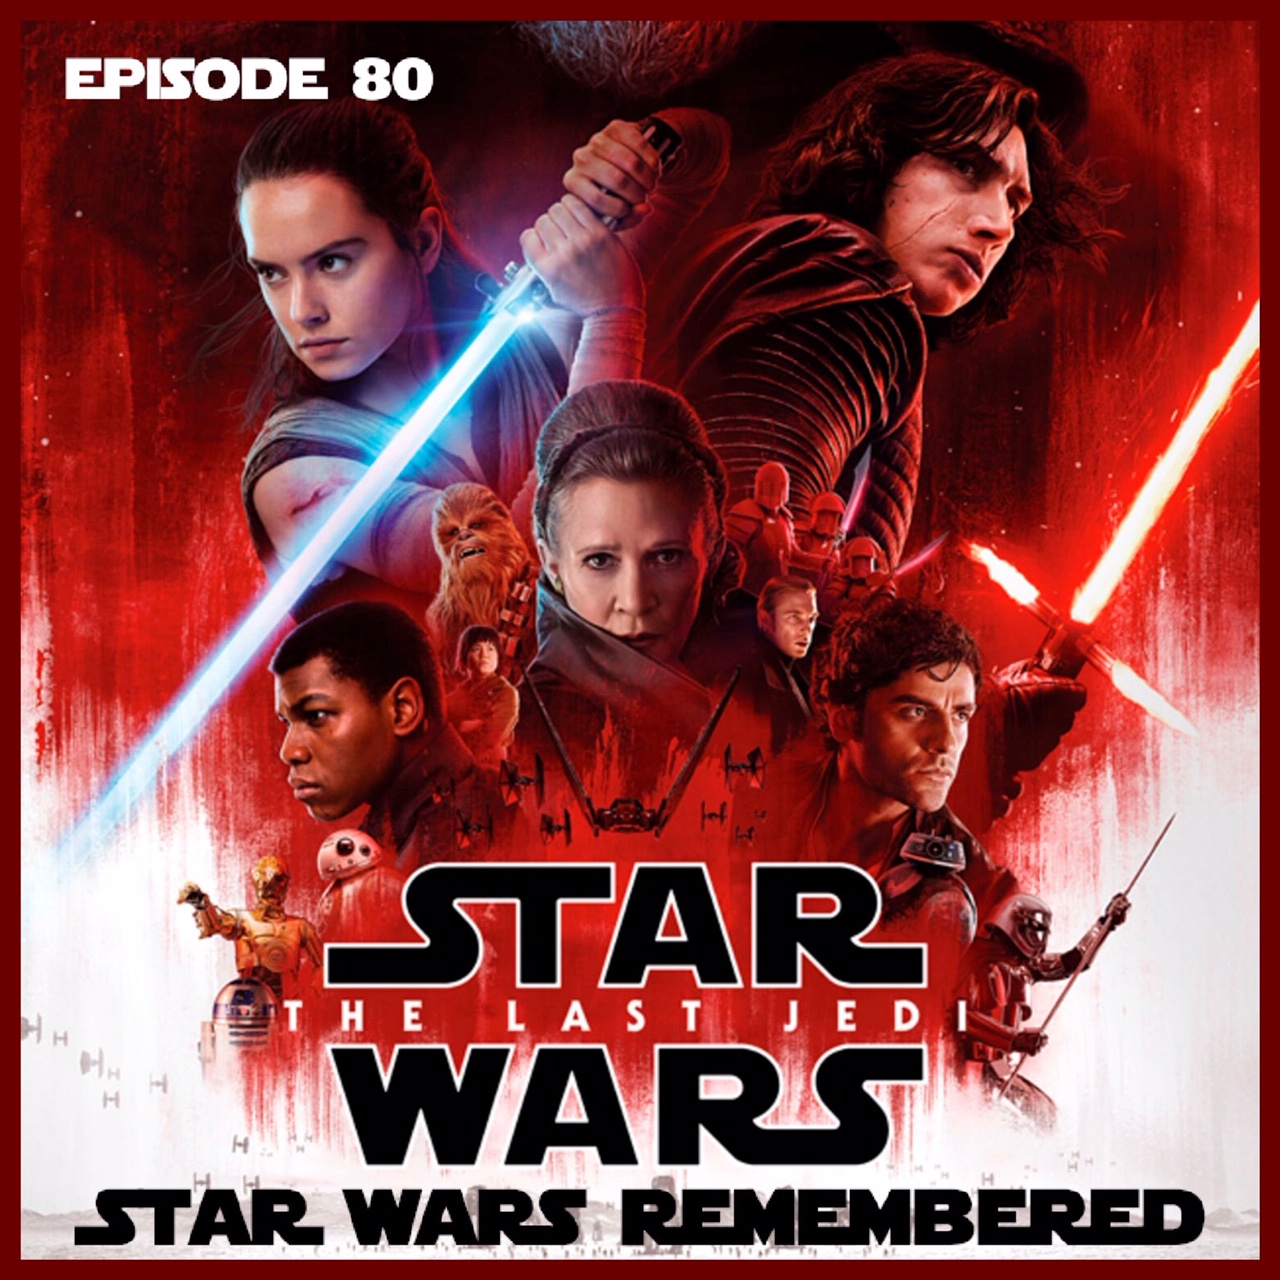 Star Wars Remembered - Episode VIII - The Last Jedi